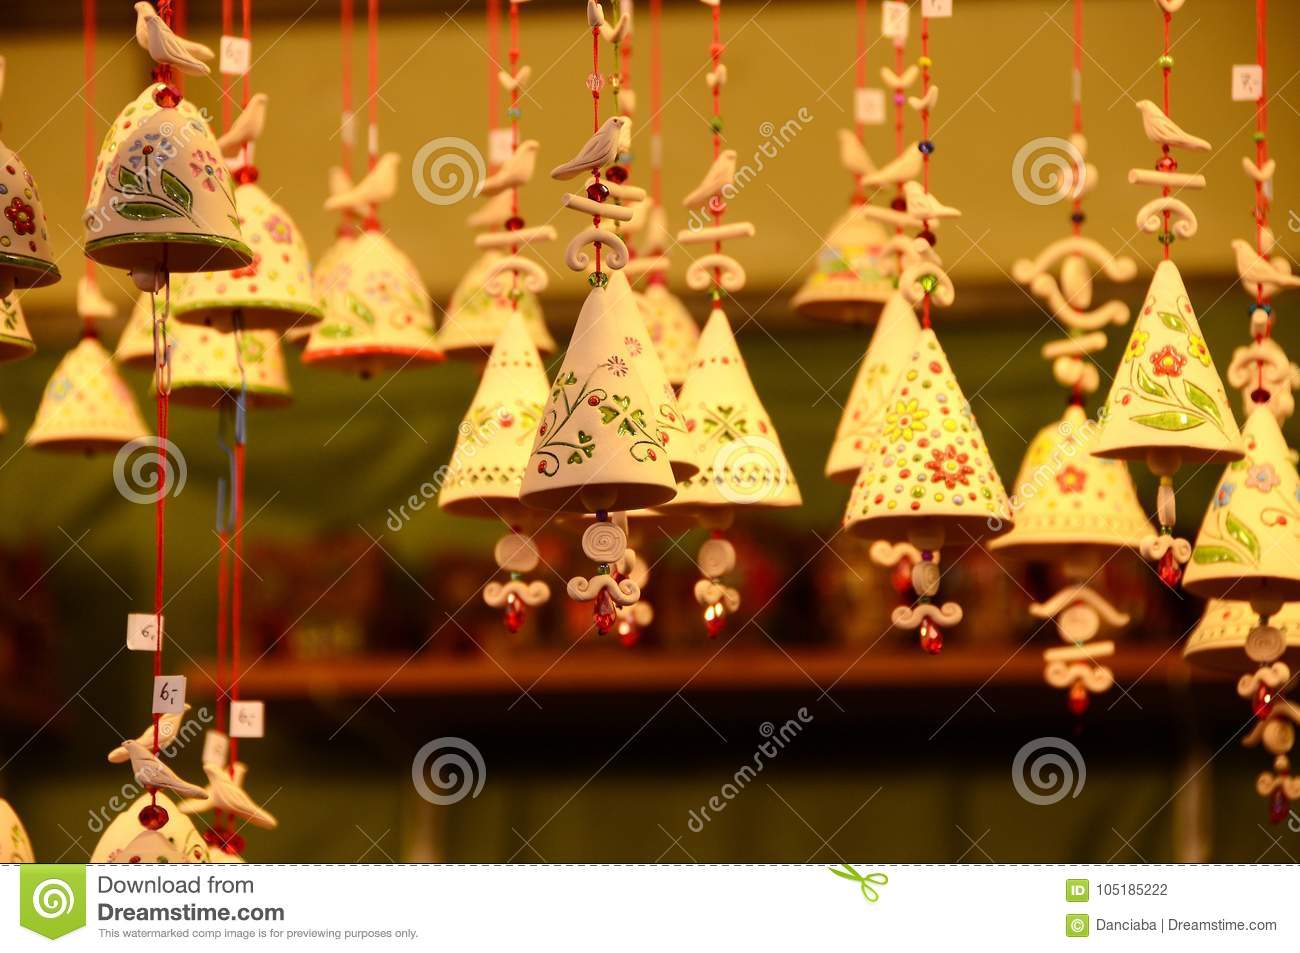 download christmas spheres and ornaments in a christmas market stock photo image of italian